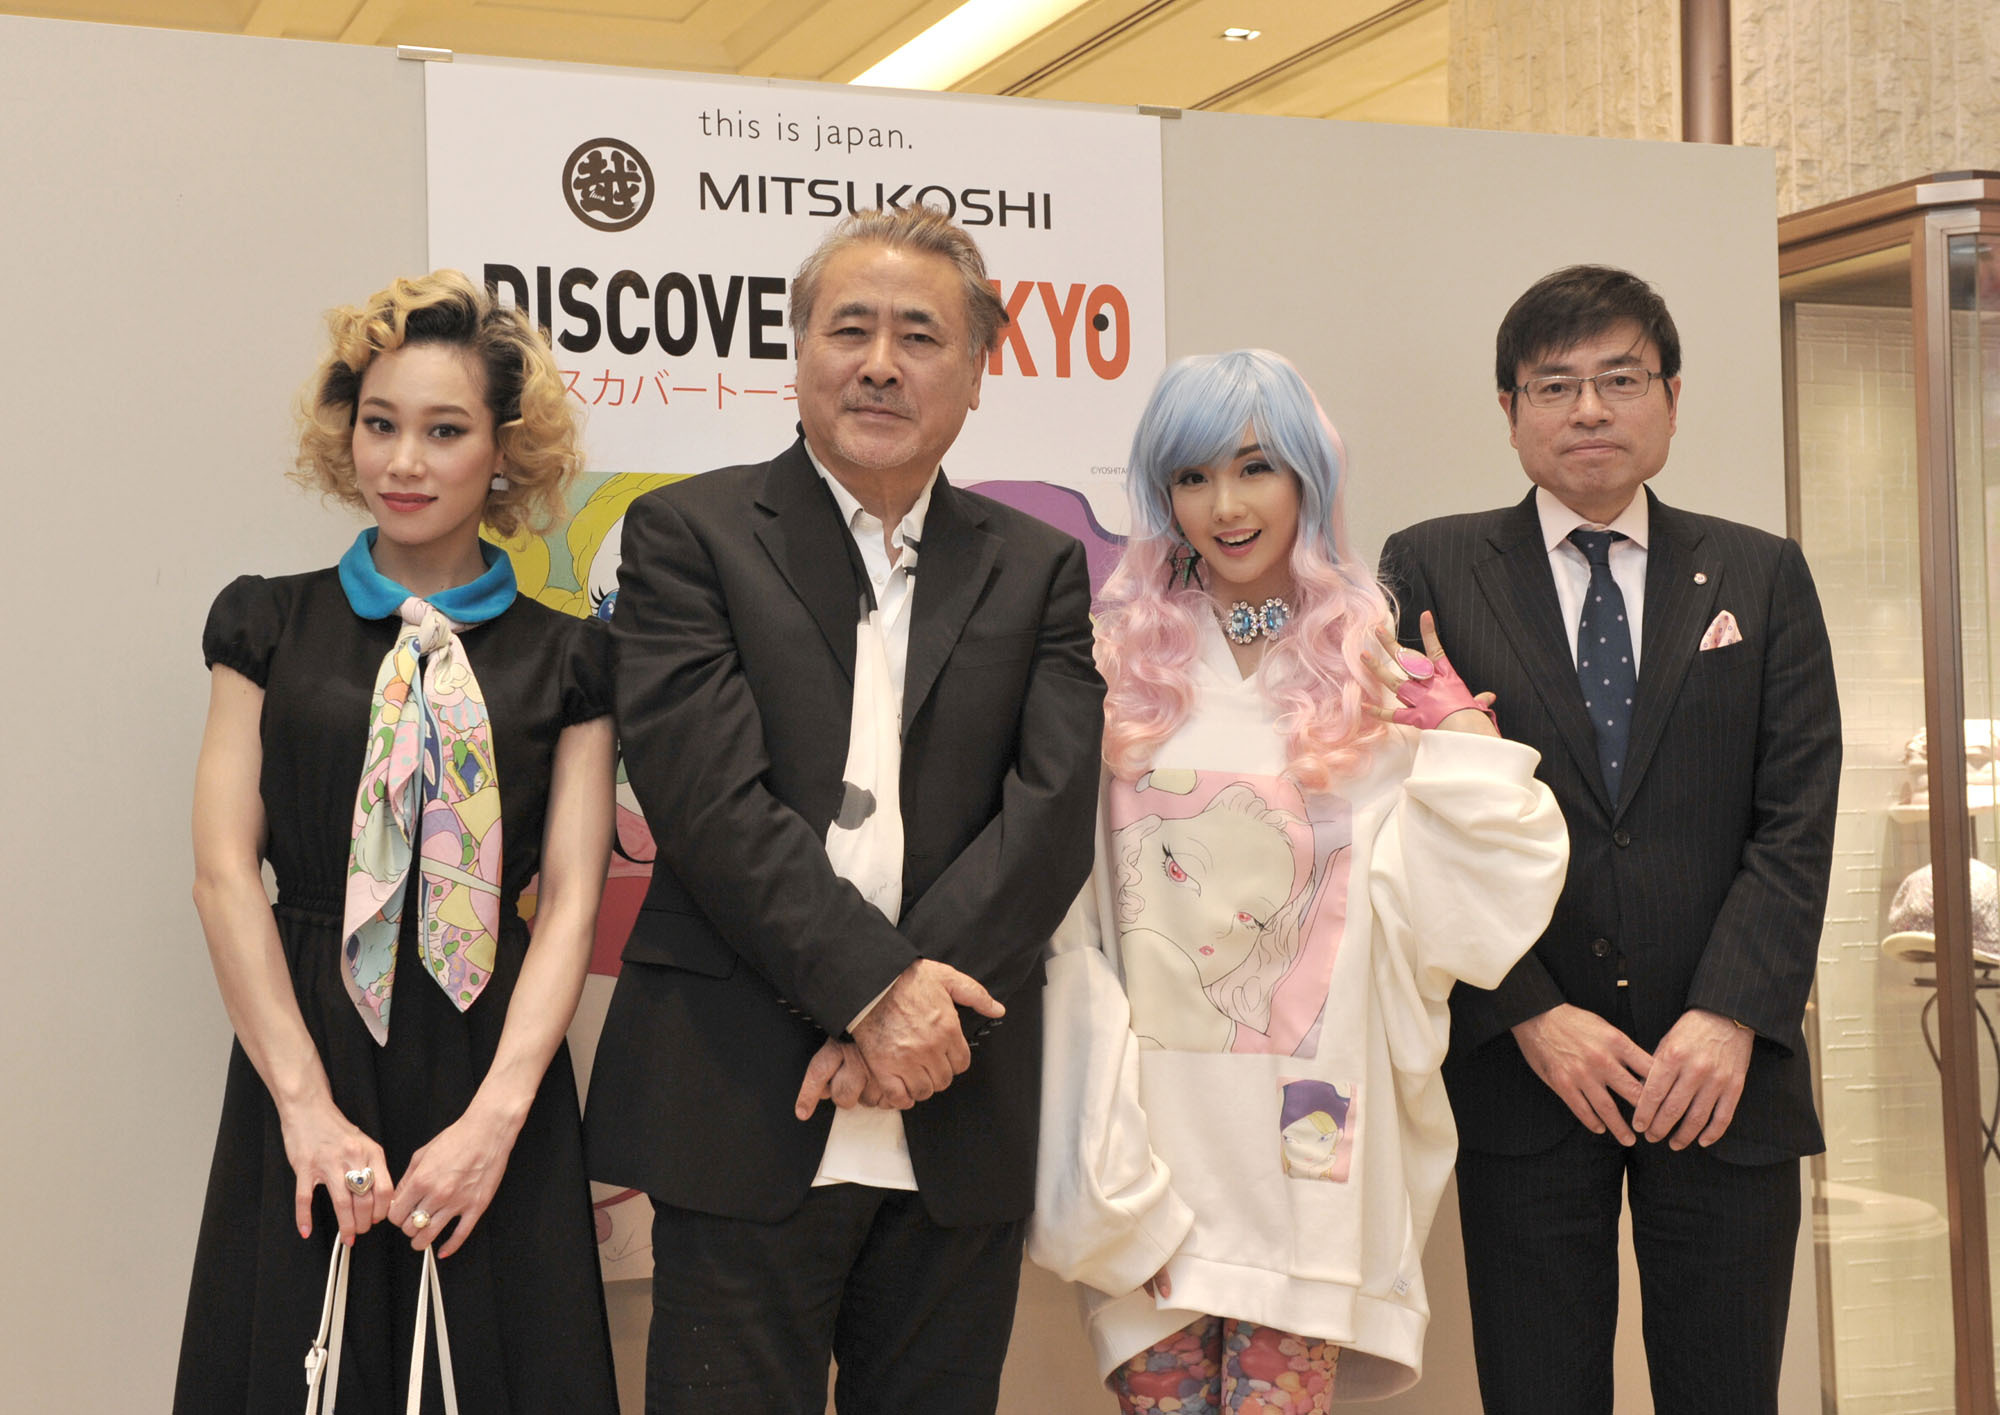 """Japanese pop culture artist Yoshitaka Amano (second from left) poses with (from left) singer Mademoiselle Yulia, artist Alodia and the Executive Officer and General Manager of the Mitsukoshi Ginza store, Makoto Asaka, at the opening ceremony of the """"DISCOVER! TOKYO"""" pop culture and fashion event, which runs until Feb. 16. 